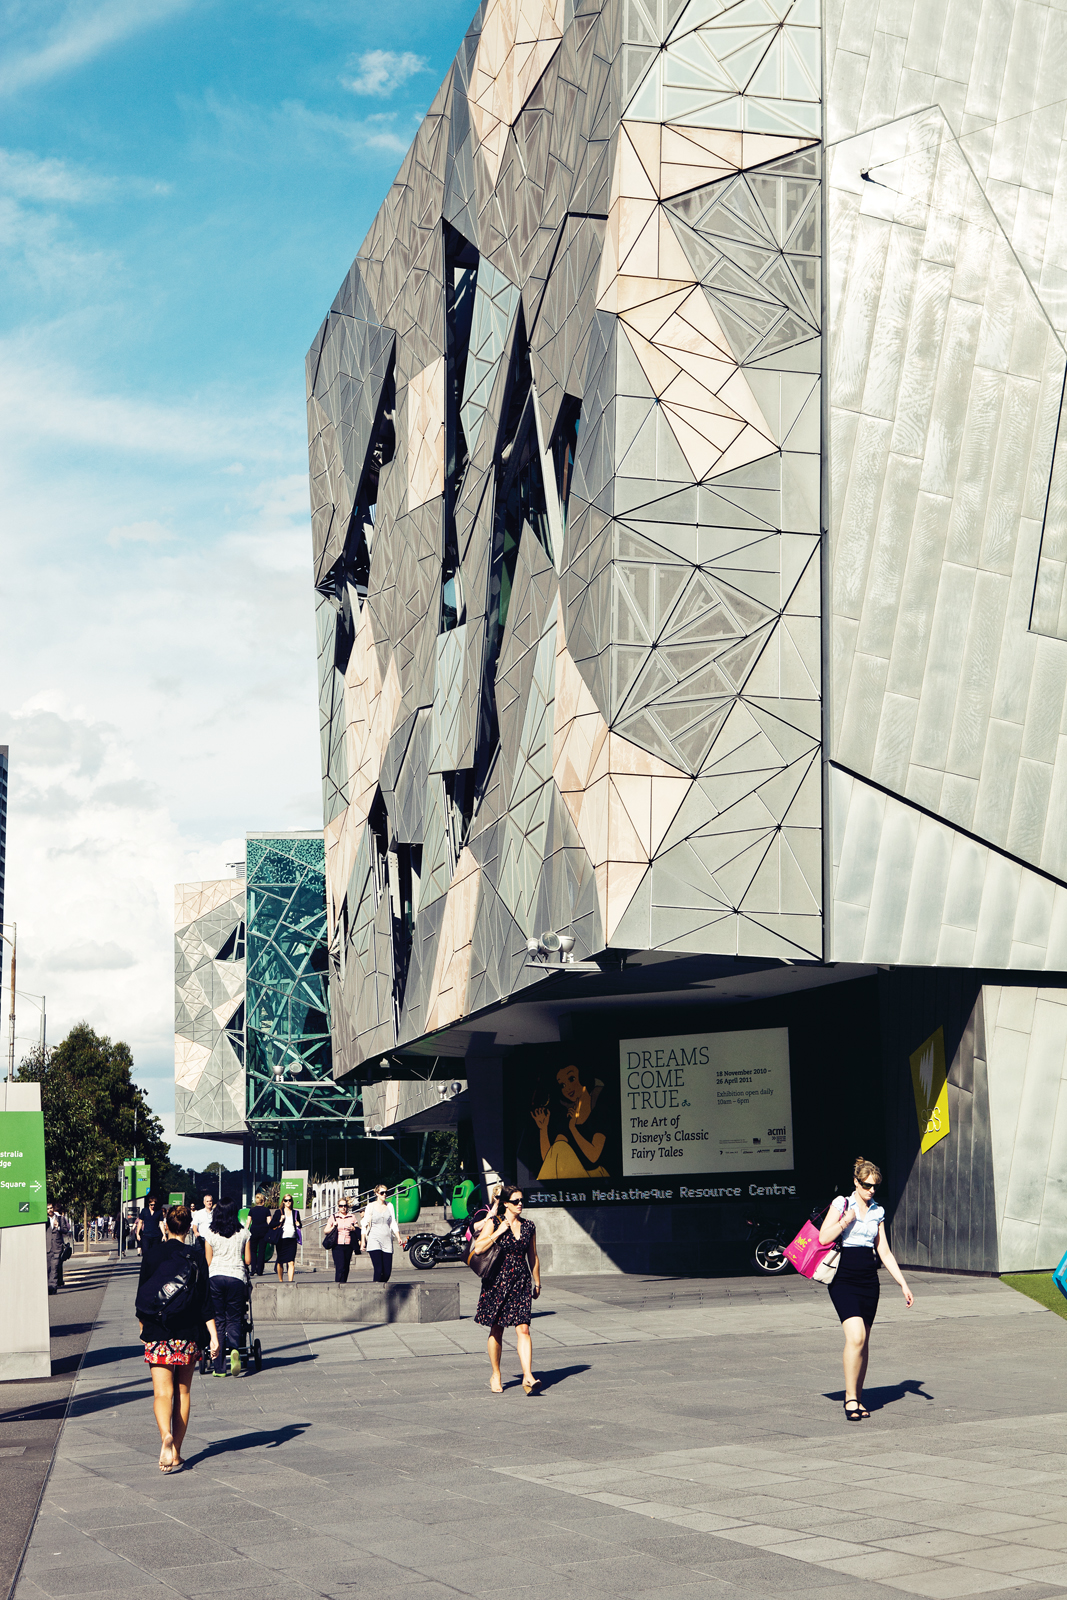 Federation Square on the banks of the Yarra in Melbourne, Australia